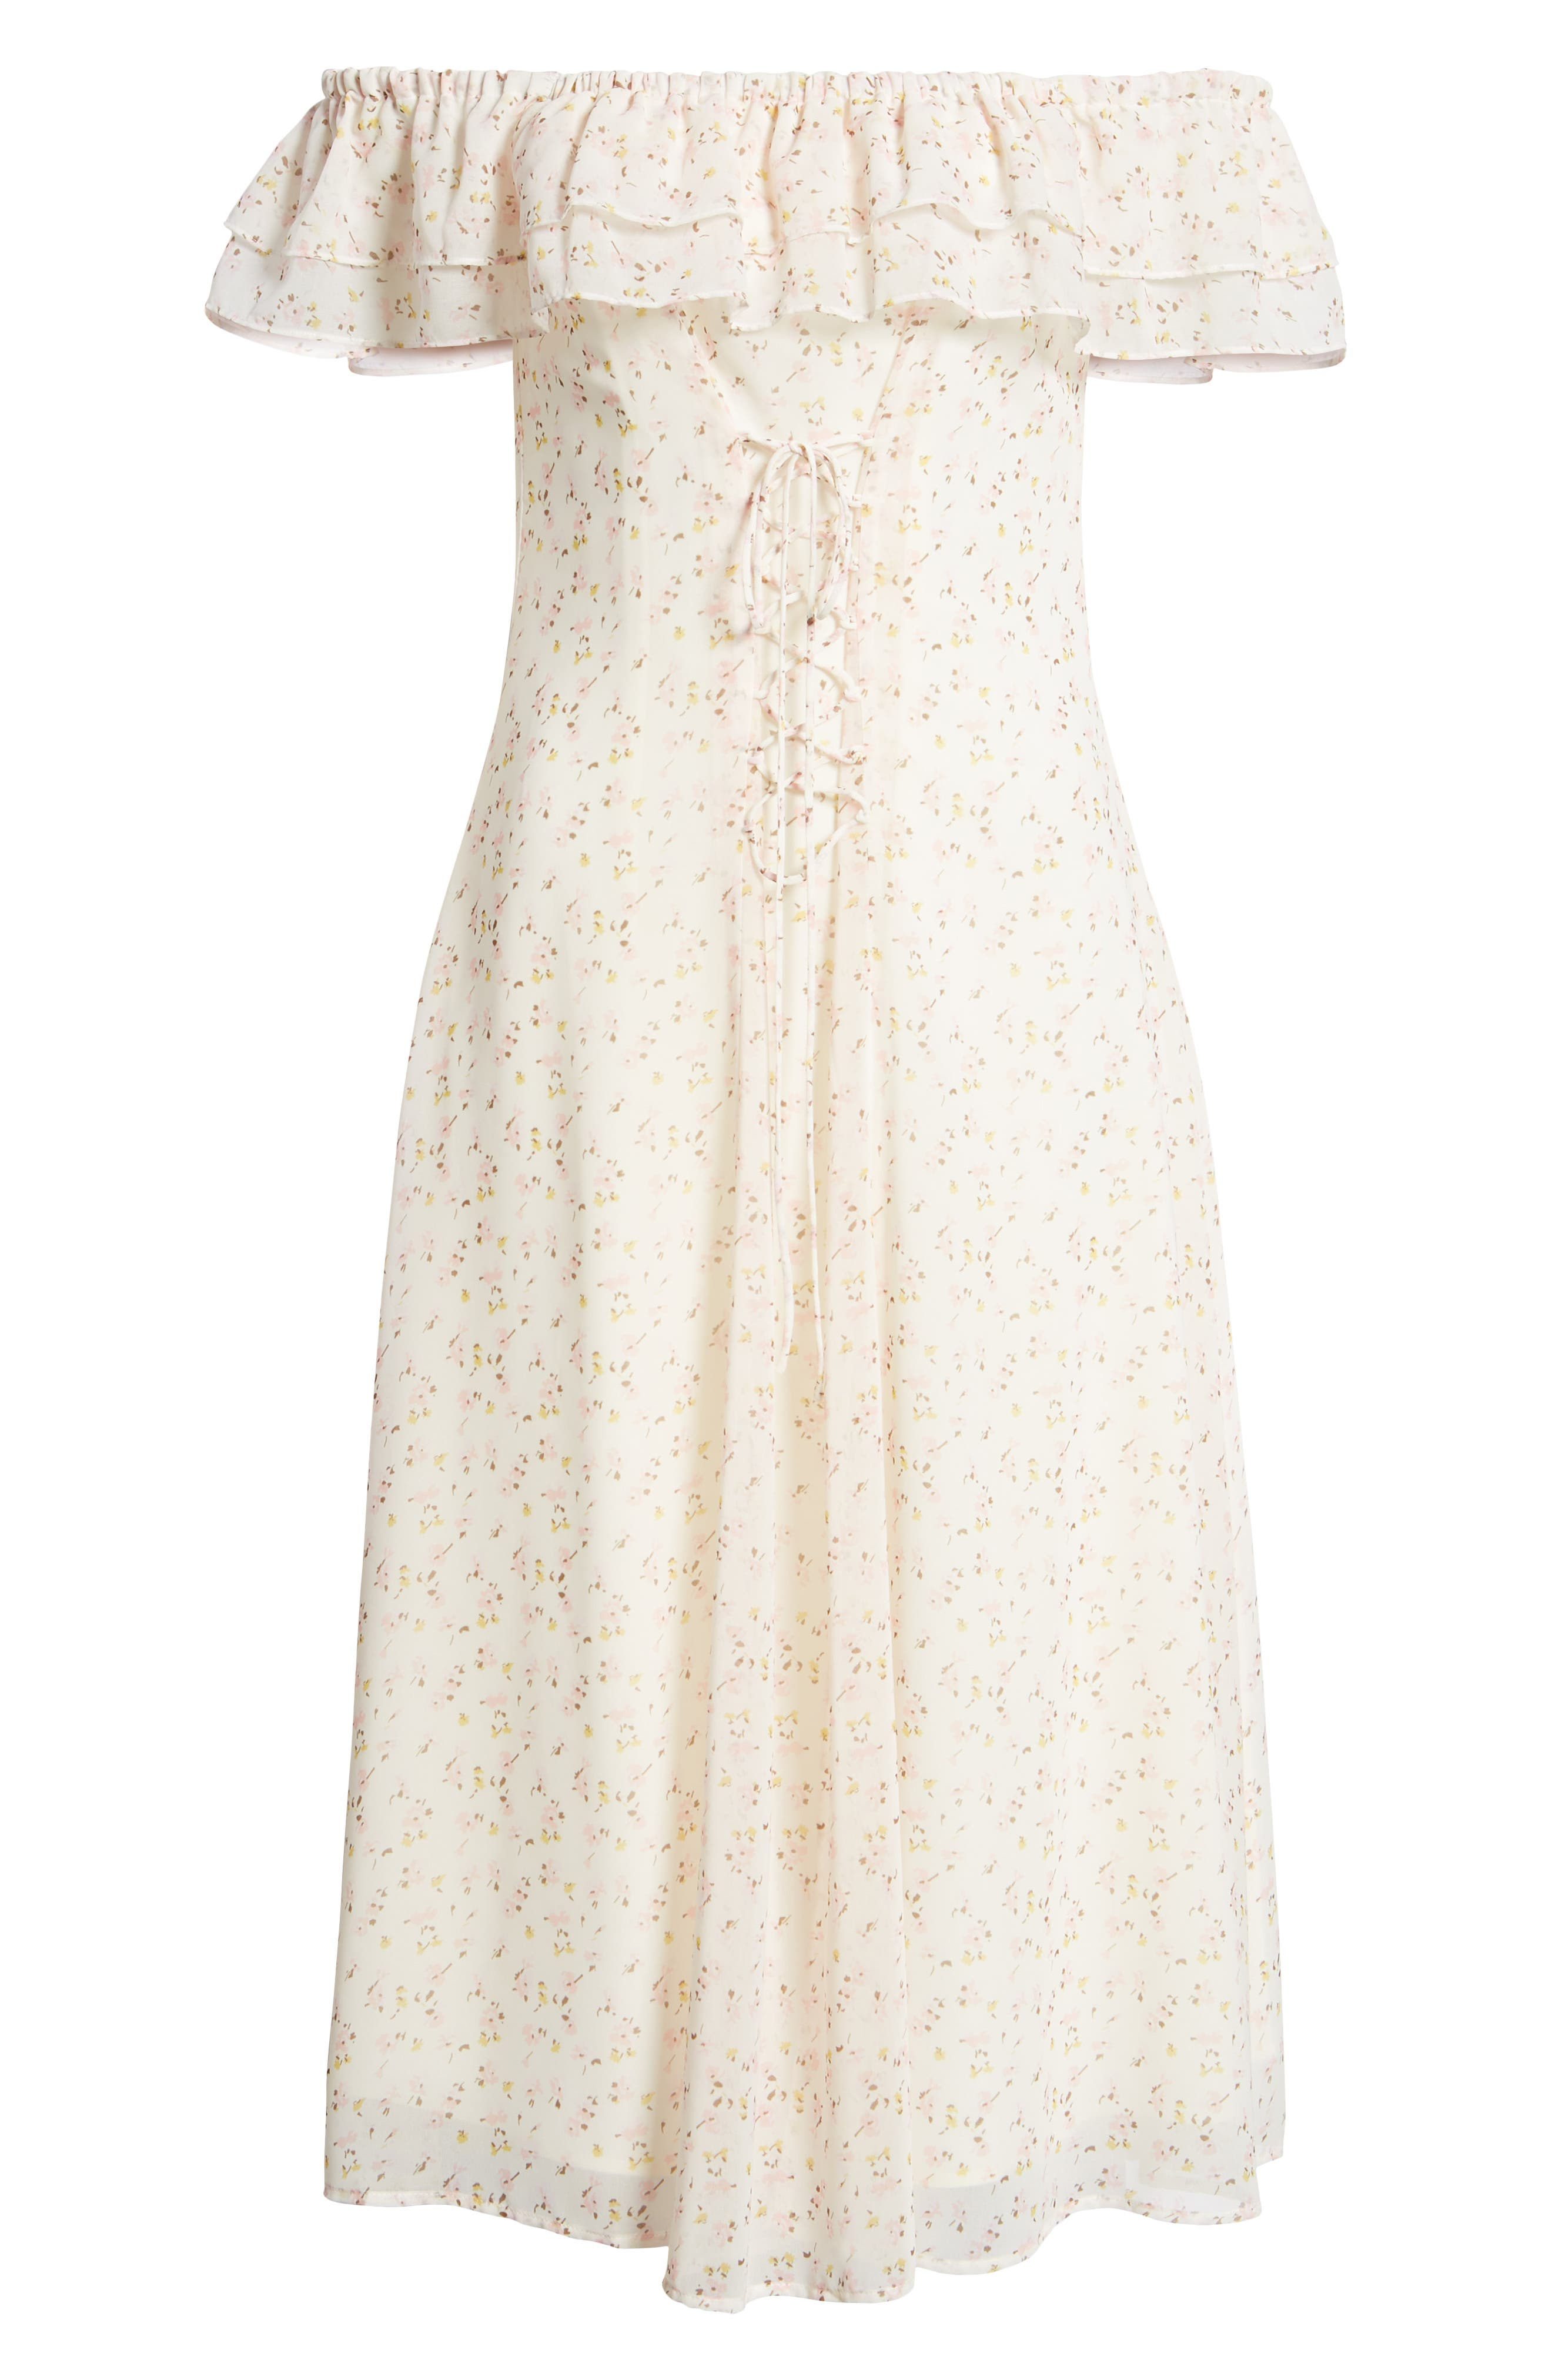 Florence Lace Off the Shoulder Midi Dress,                             Alternate thumbnail 8, color,                             Ivory Ditzy